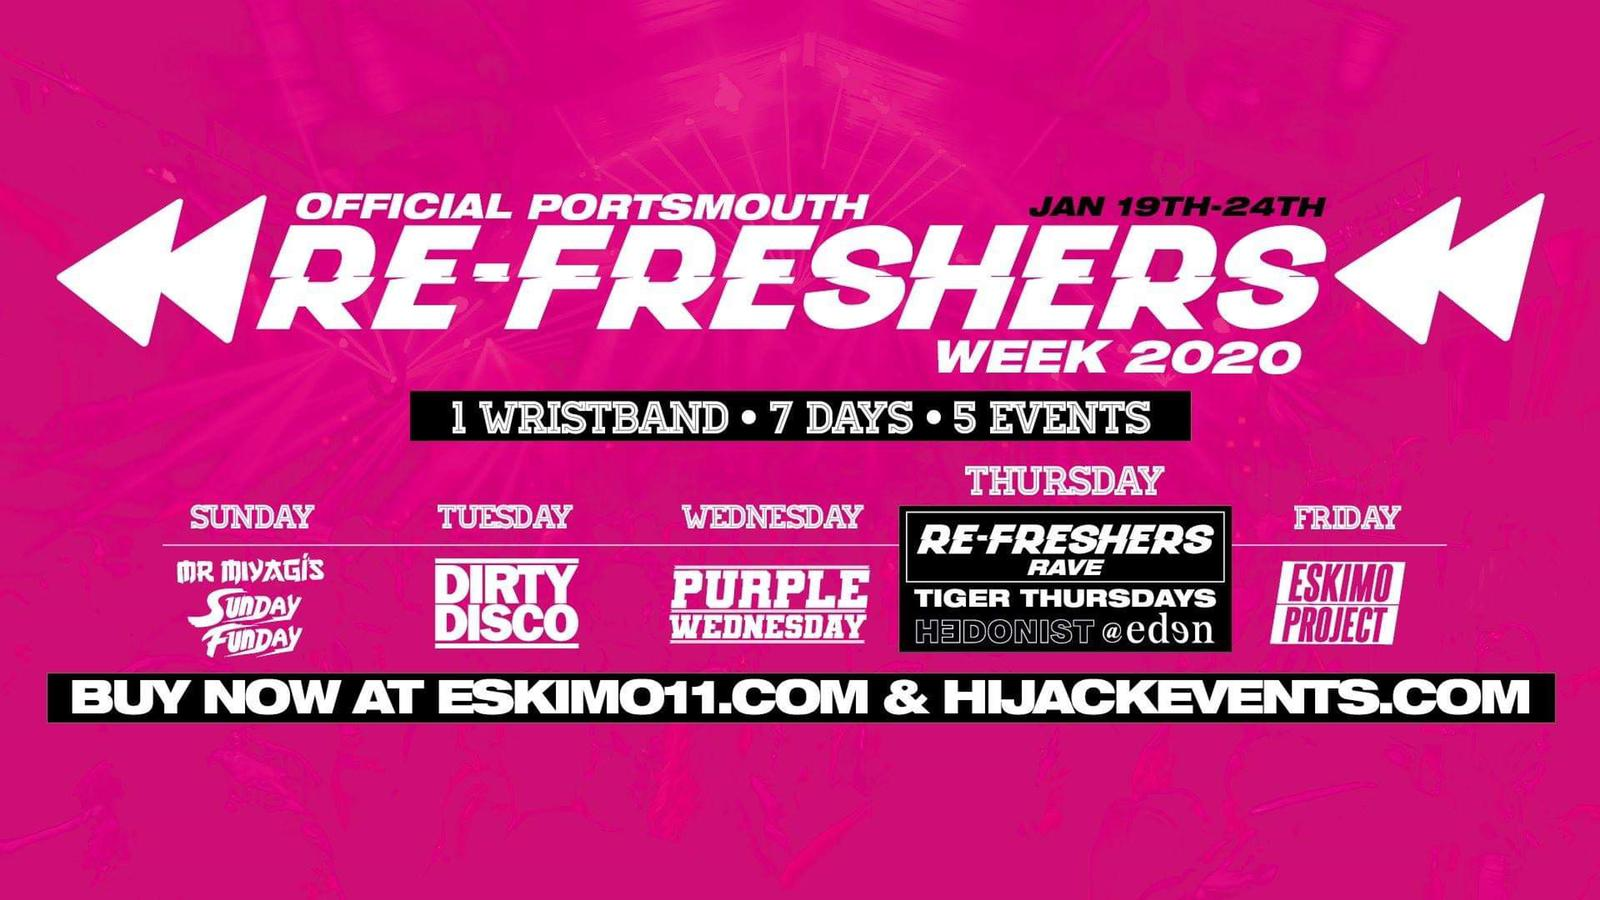 Refreshers Week – One Discounted  Wristband All Parties – INC Refreshers Rave